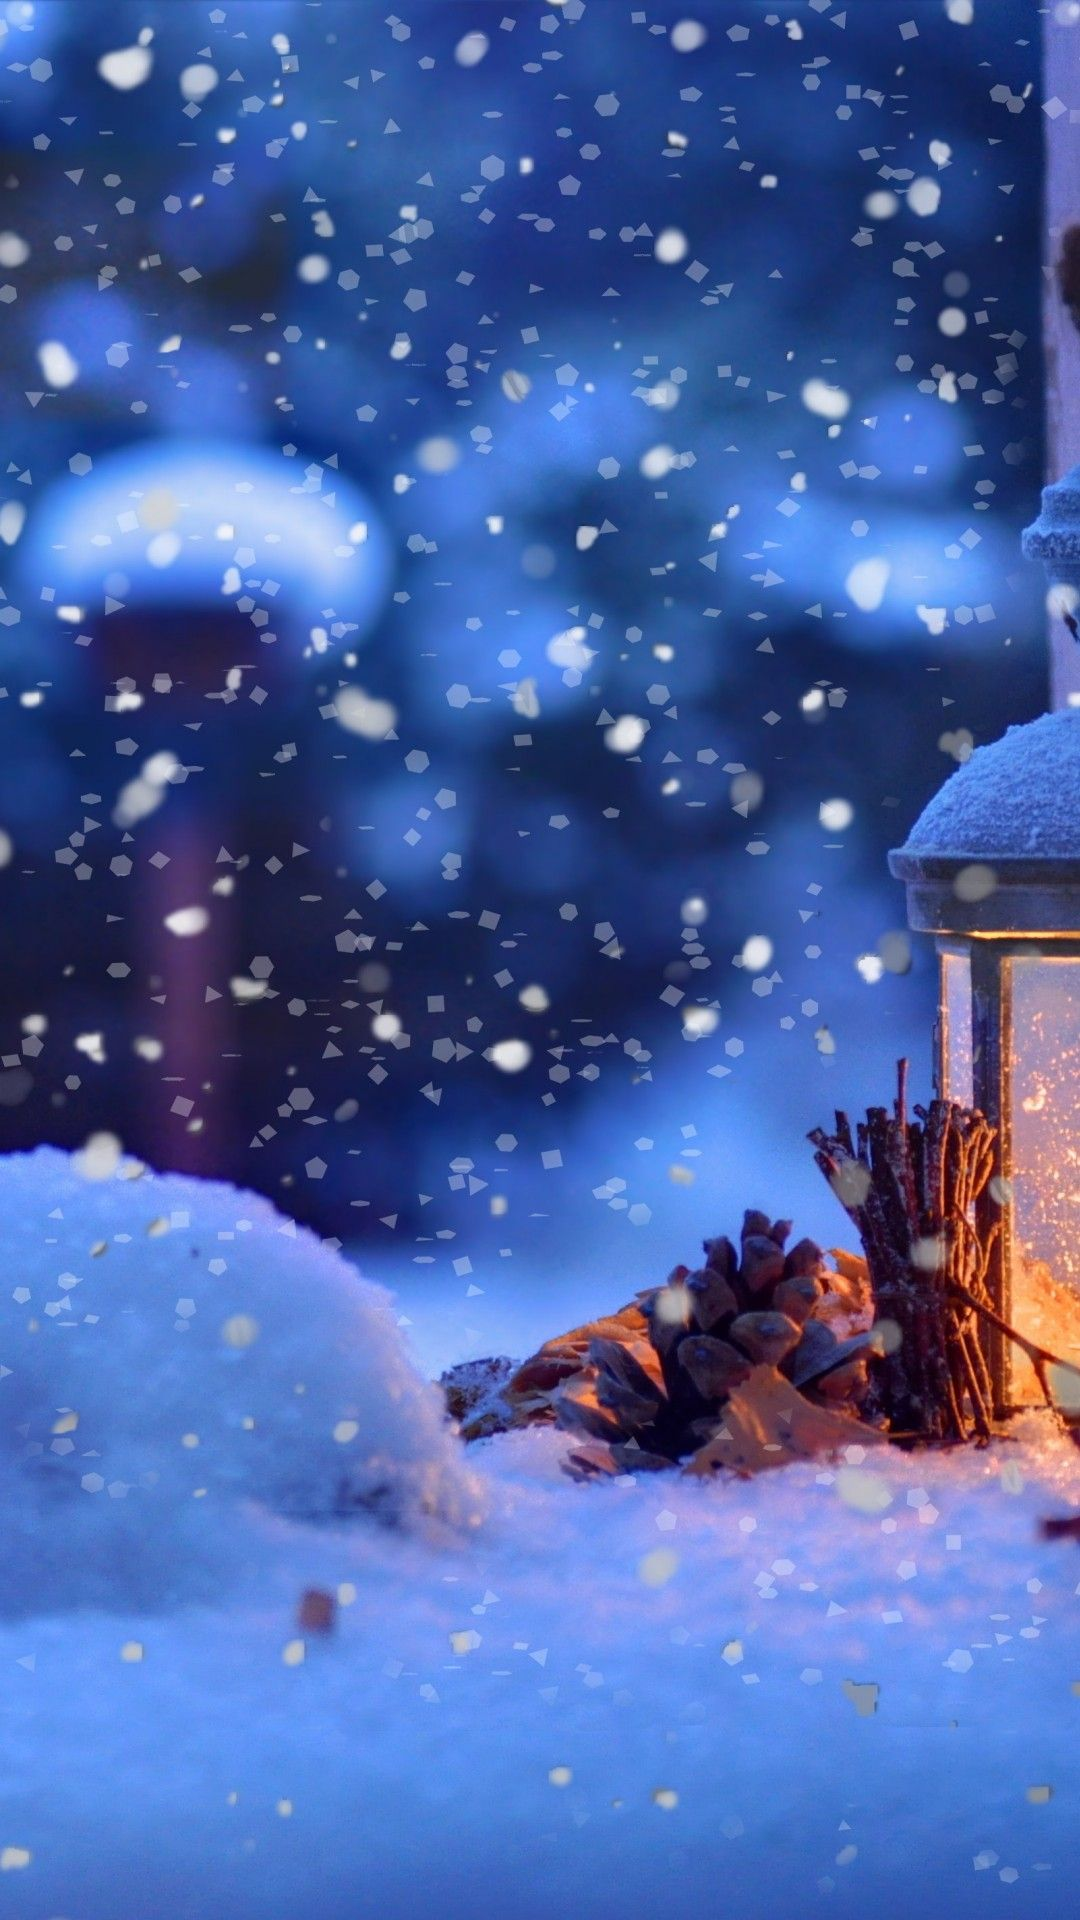 Christmas Candle Snow Macro Bokeh Android Wallpapers Christmas Lanterns Christmas Wallpaper Winter Wallpaper